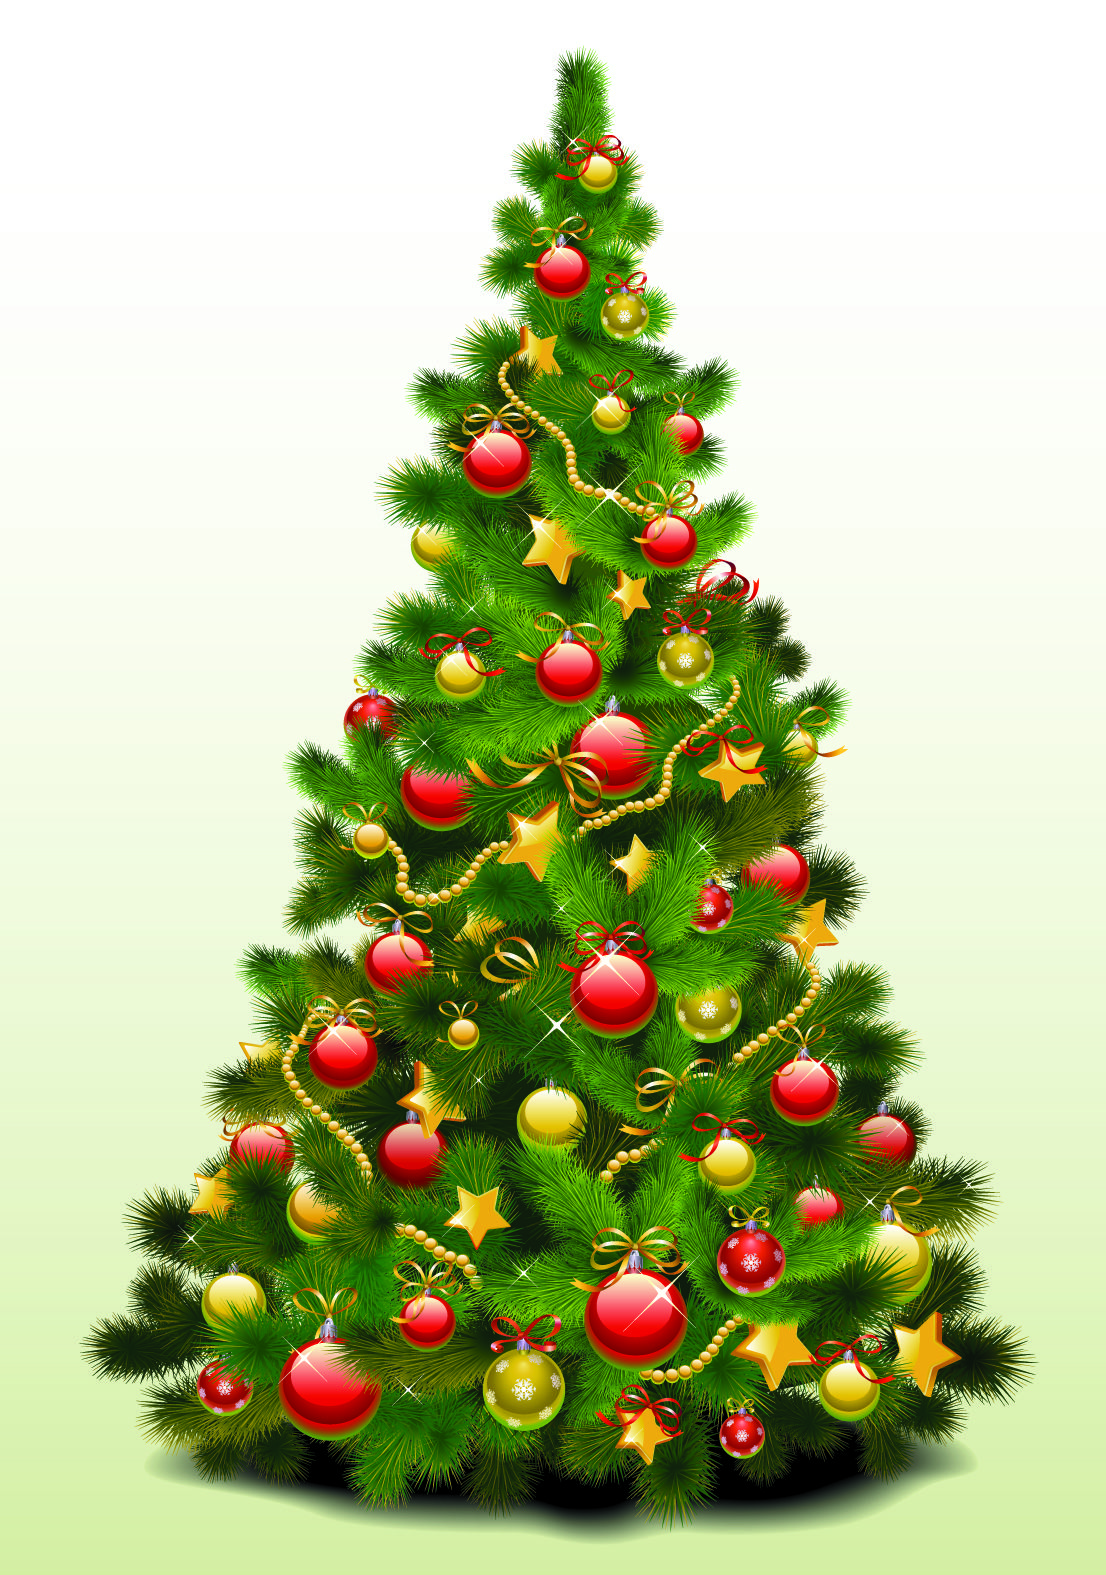 Free Vector Exquisite Christmas Tree Vector Graphic Available For Free Downlo Christmas Tree With Coloured Lights Christmas Tree Pictures Christmas Tree Images